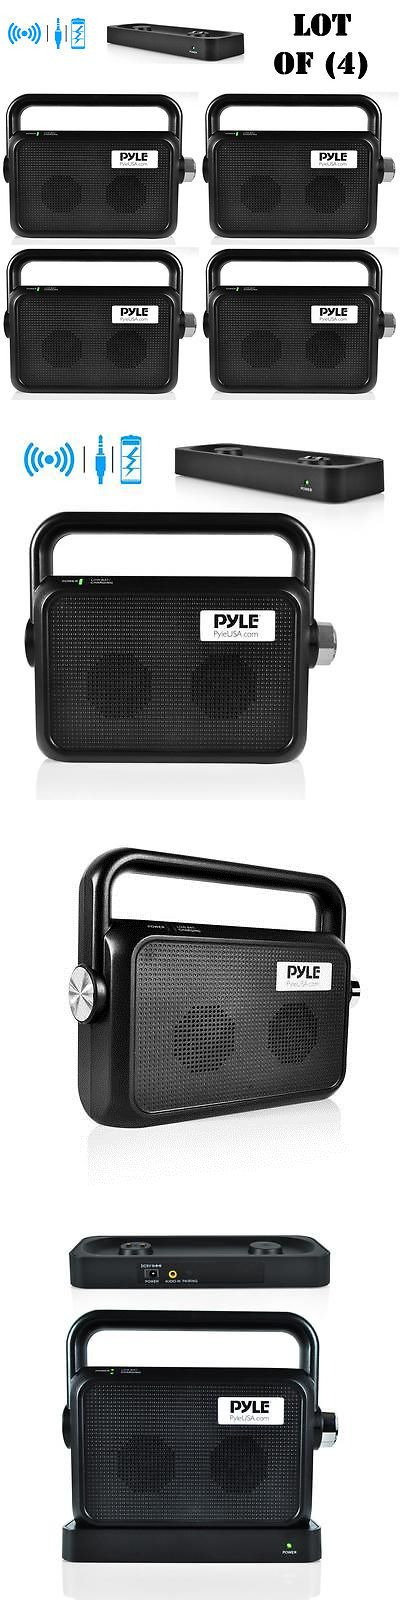 Ham Radio Receivers: Lot Of (4) New Pyle Ptvsp18bk Wireless Tv Speaker Transmitter And Receiver -> BUY IT NOW ONLY: $338.09 on eBay!